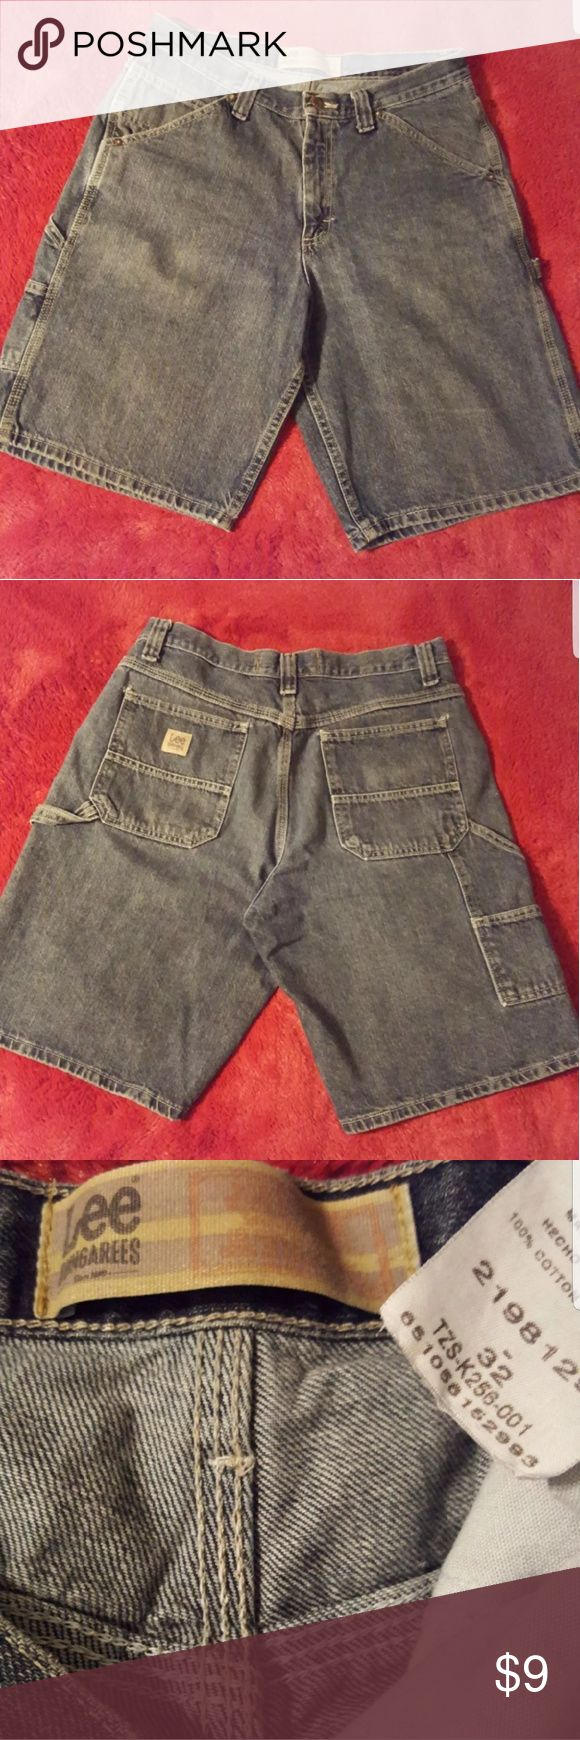 Lee Mens Dungarees Carpenter Jean Shorts Mens Dungarees stone-washed Denim Carpenter Shorts by Lee offer a dependable, casual look. Made of 100% cotton for comfort and easy care. Features 2 back pockets, a side utility pocket, 2 front pockets, a front coin pocket, and a zipper fly. Workwear-style shorts in mid-weight denim features a side utility pocket and a hammer loop. 11 inch inseam falls at or below knee. In good used condition. Retails between $19.99 (on sale) and $30. SIZE: 32…